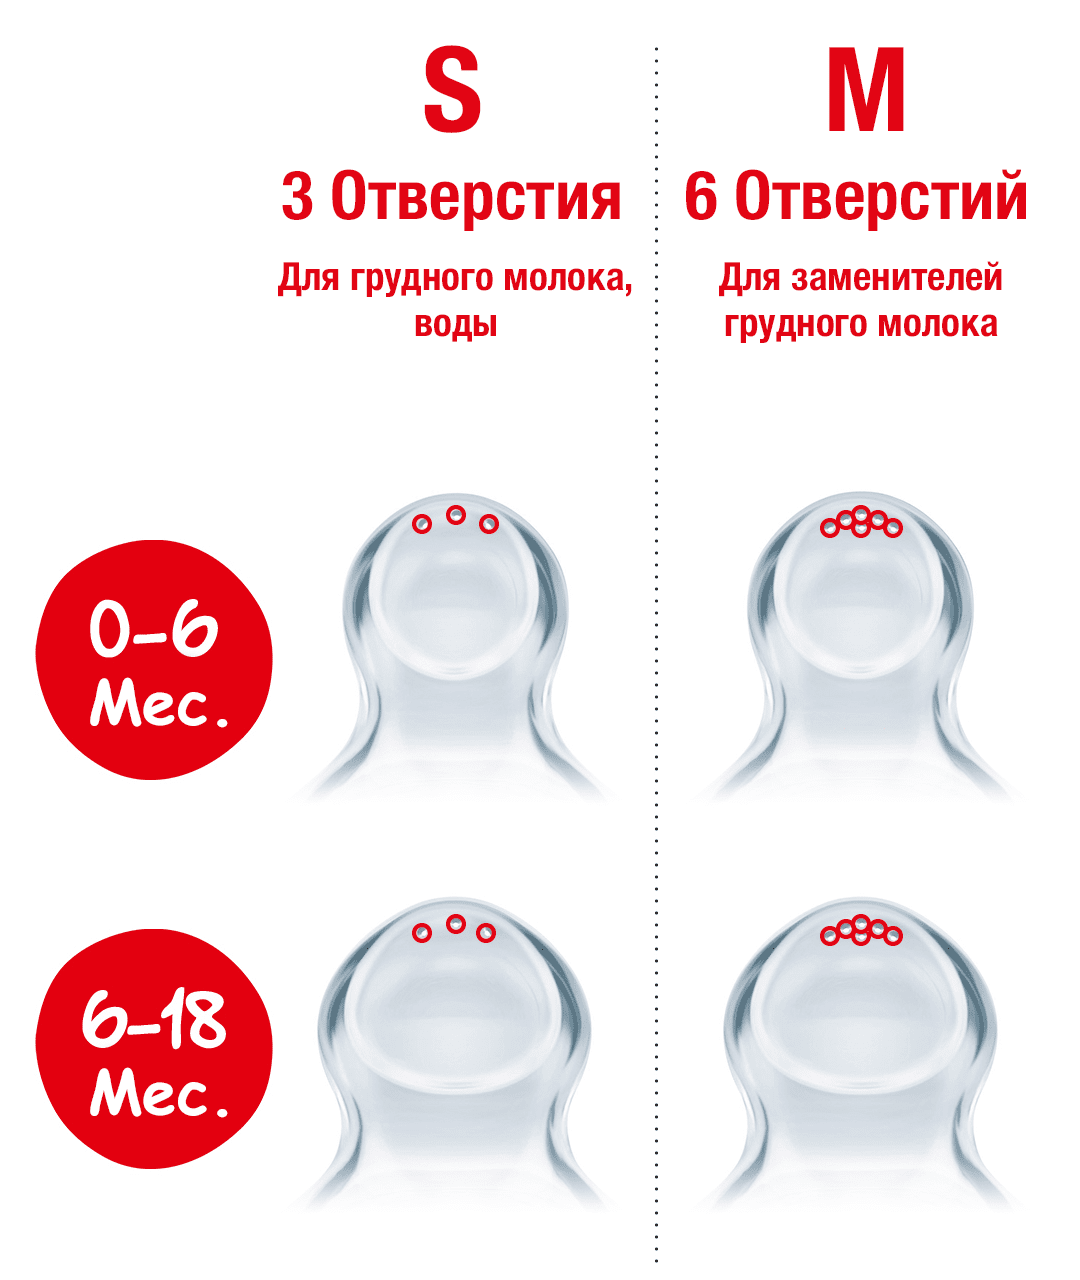 http://f.igtrend.kz/products/001/051/10743695_6.png